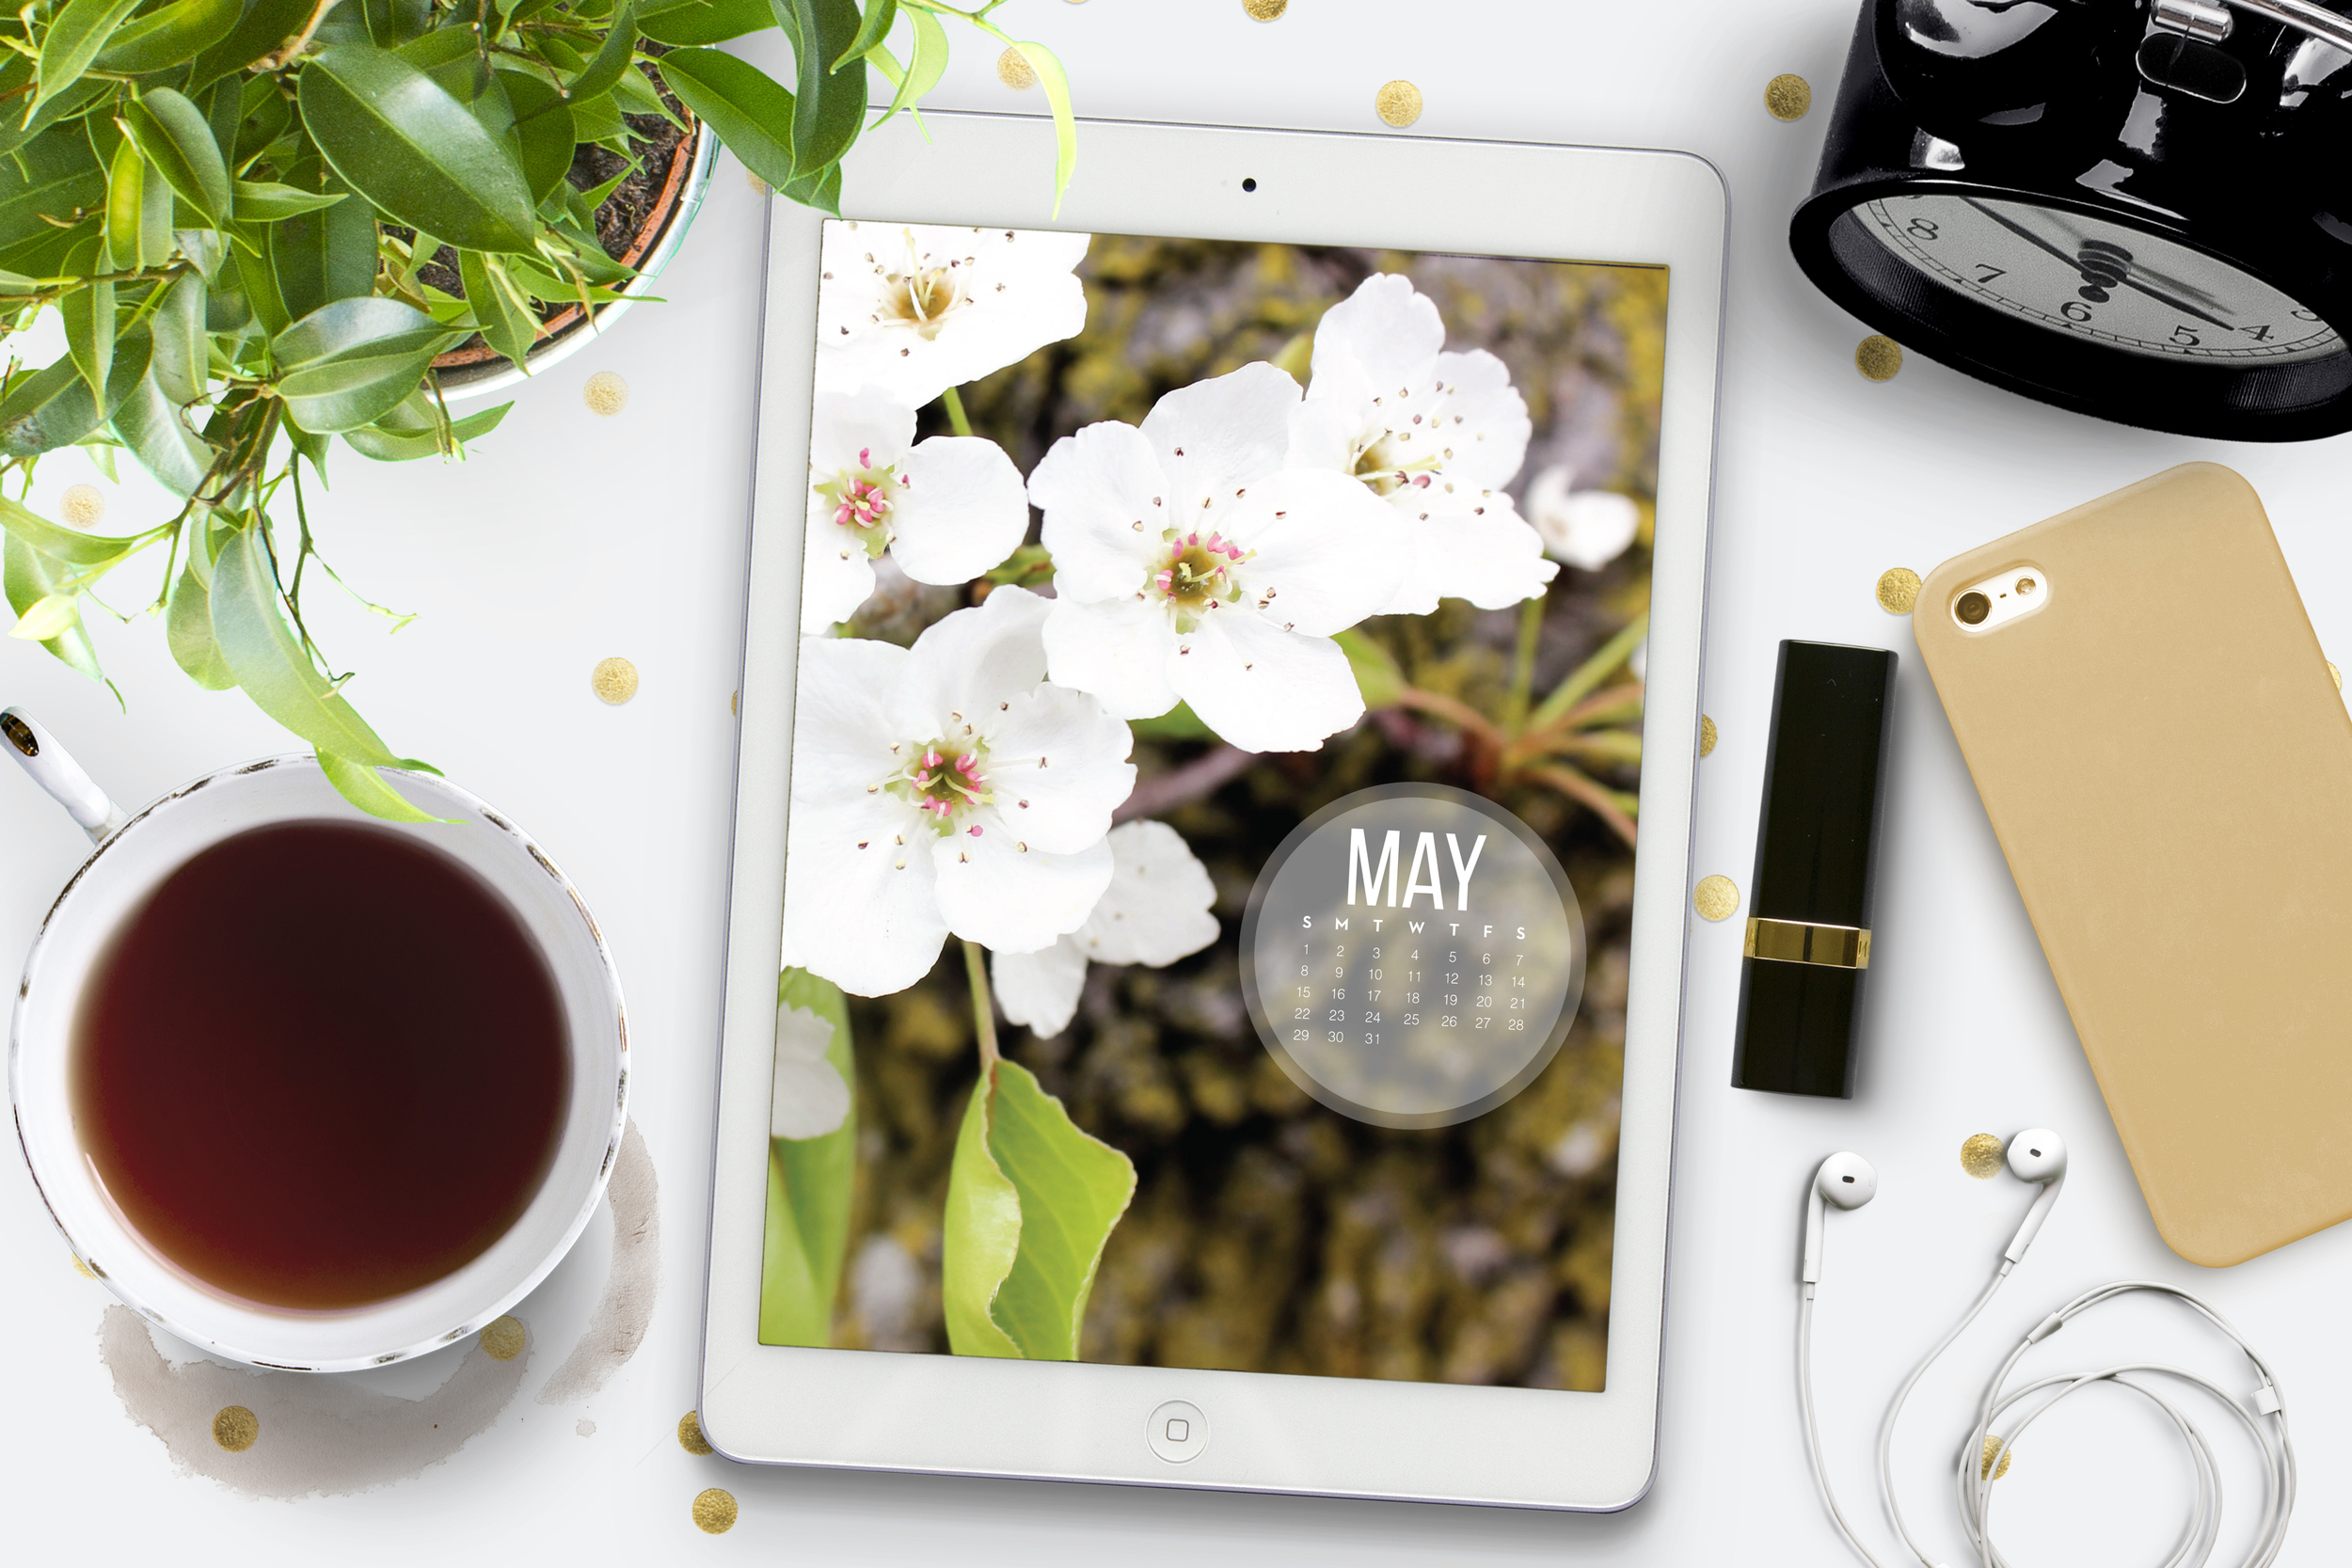 Free download for May calendar, to use as Mac, Windows, iPhone, or iPad background